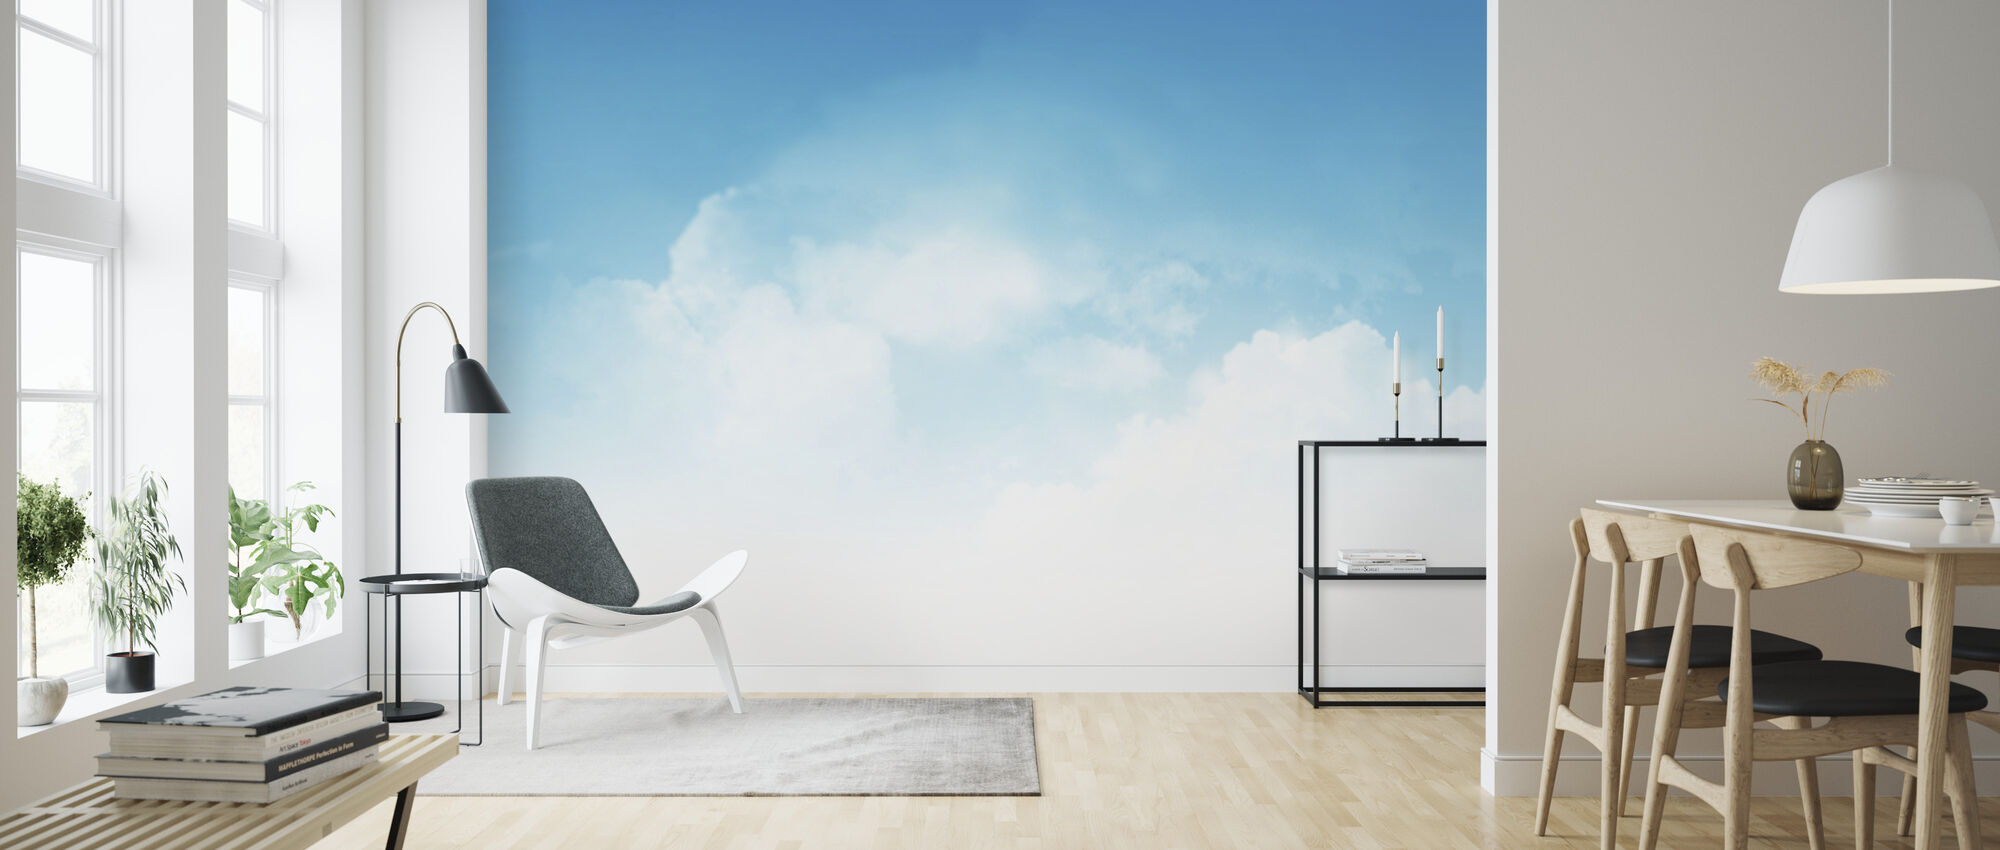 Cloudy Blue Sky - Wallpaper - Living Room